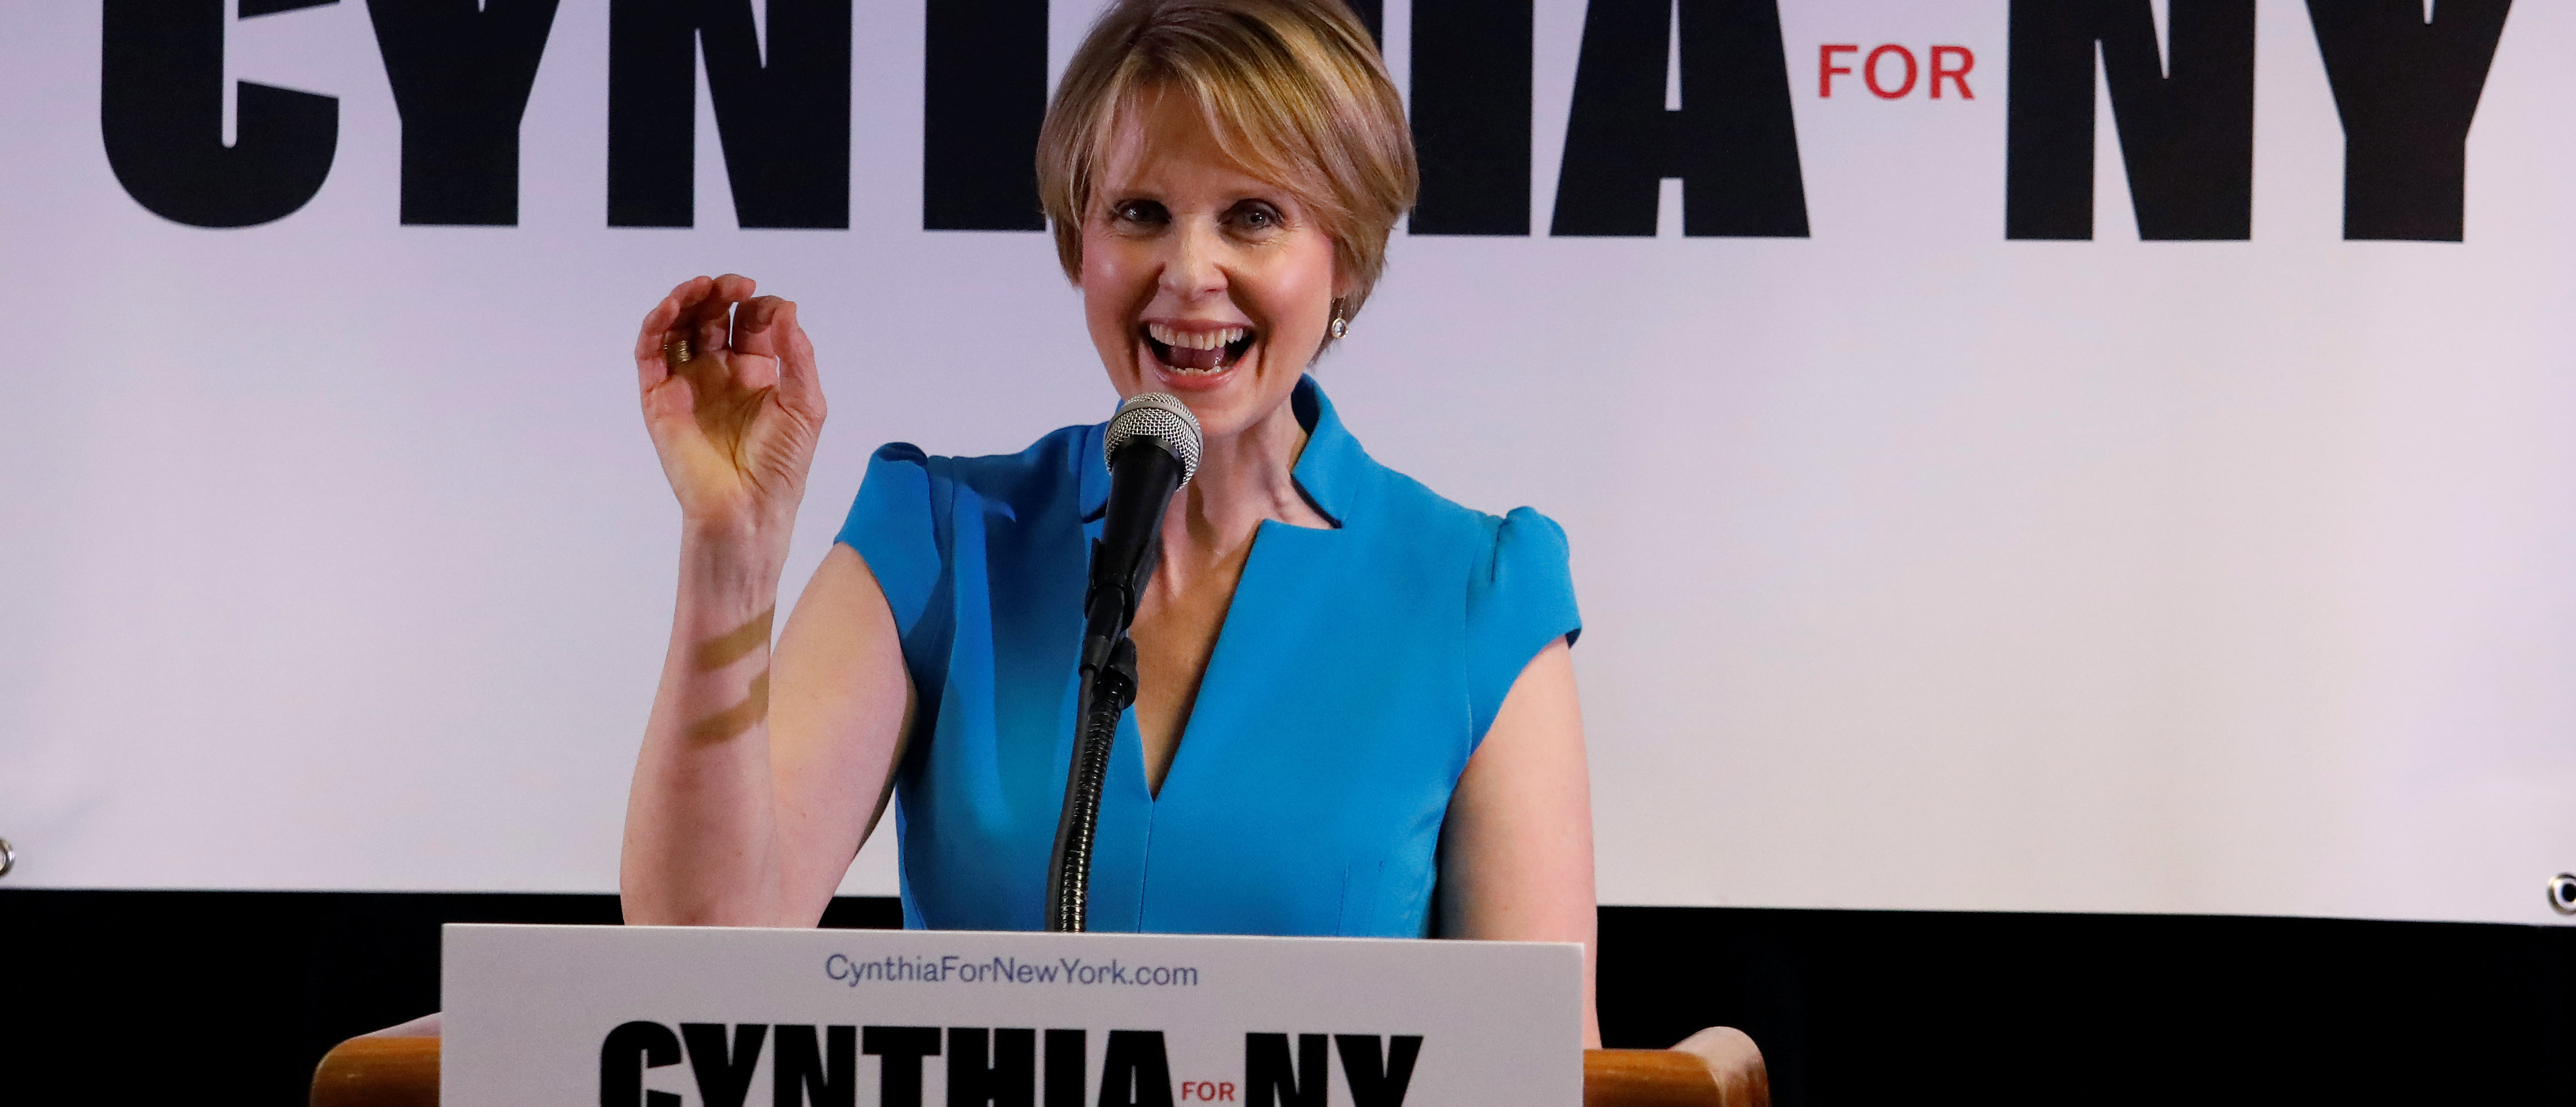 Actress Cynthia Nixon announces that she is running for Governor of New York at a campaign stop in Brooklyn